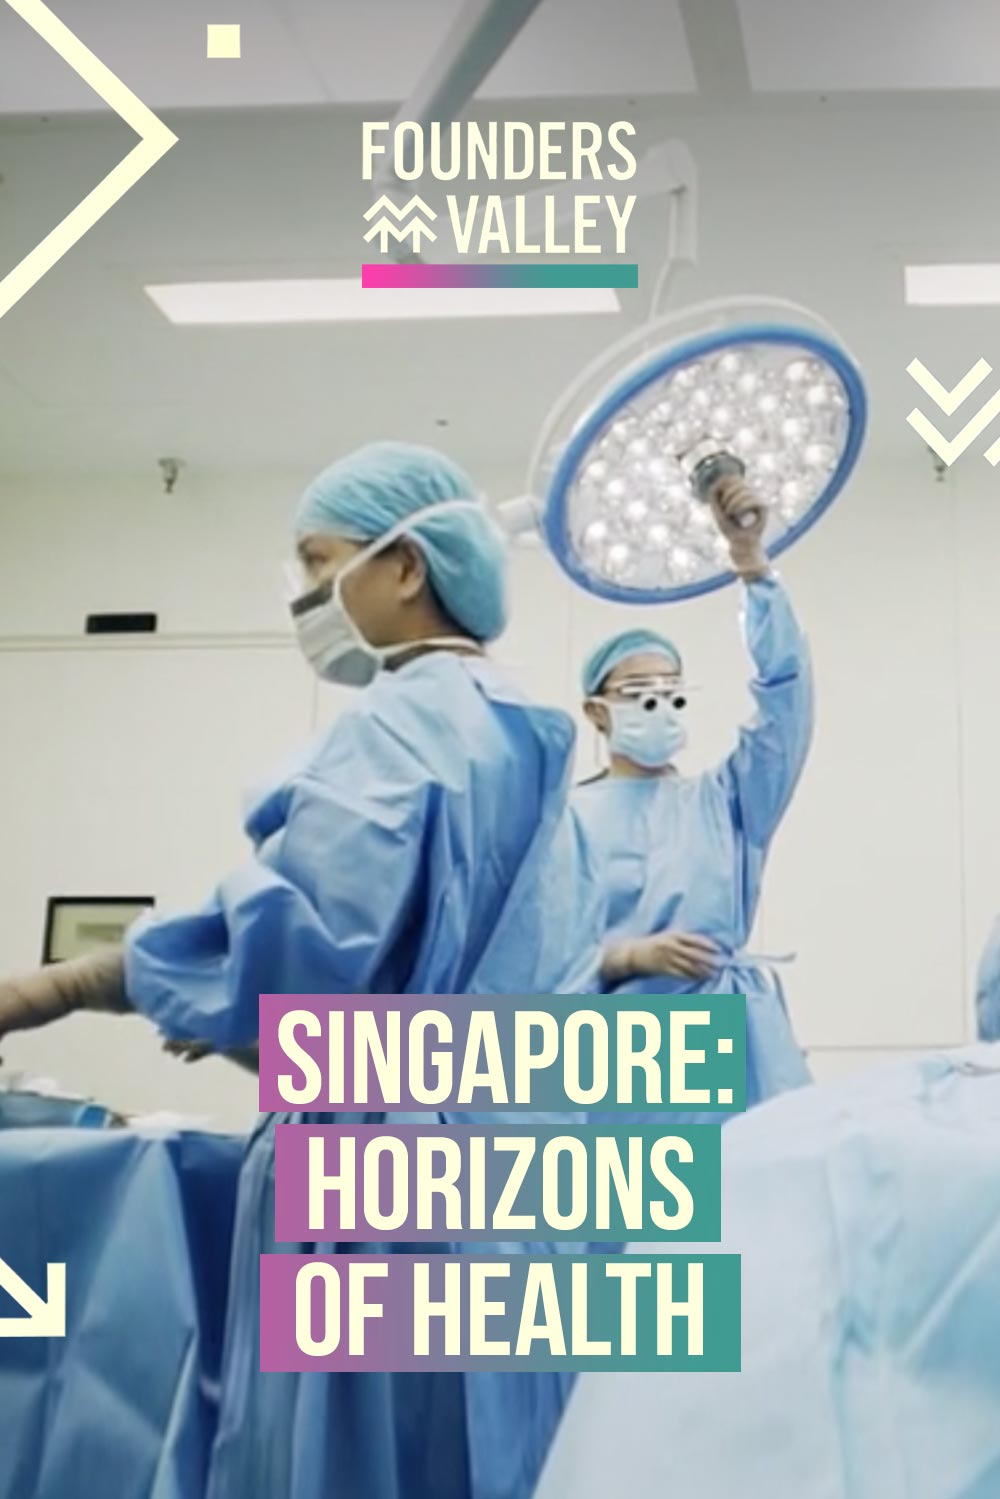 Founders' Valley: Horizons of Health, Singapore